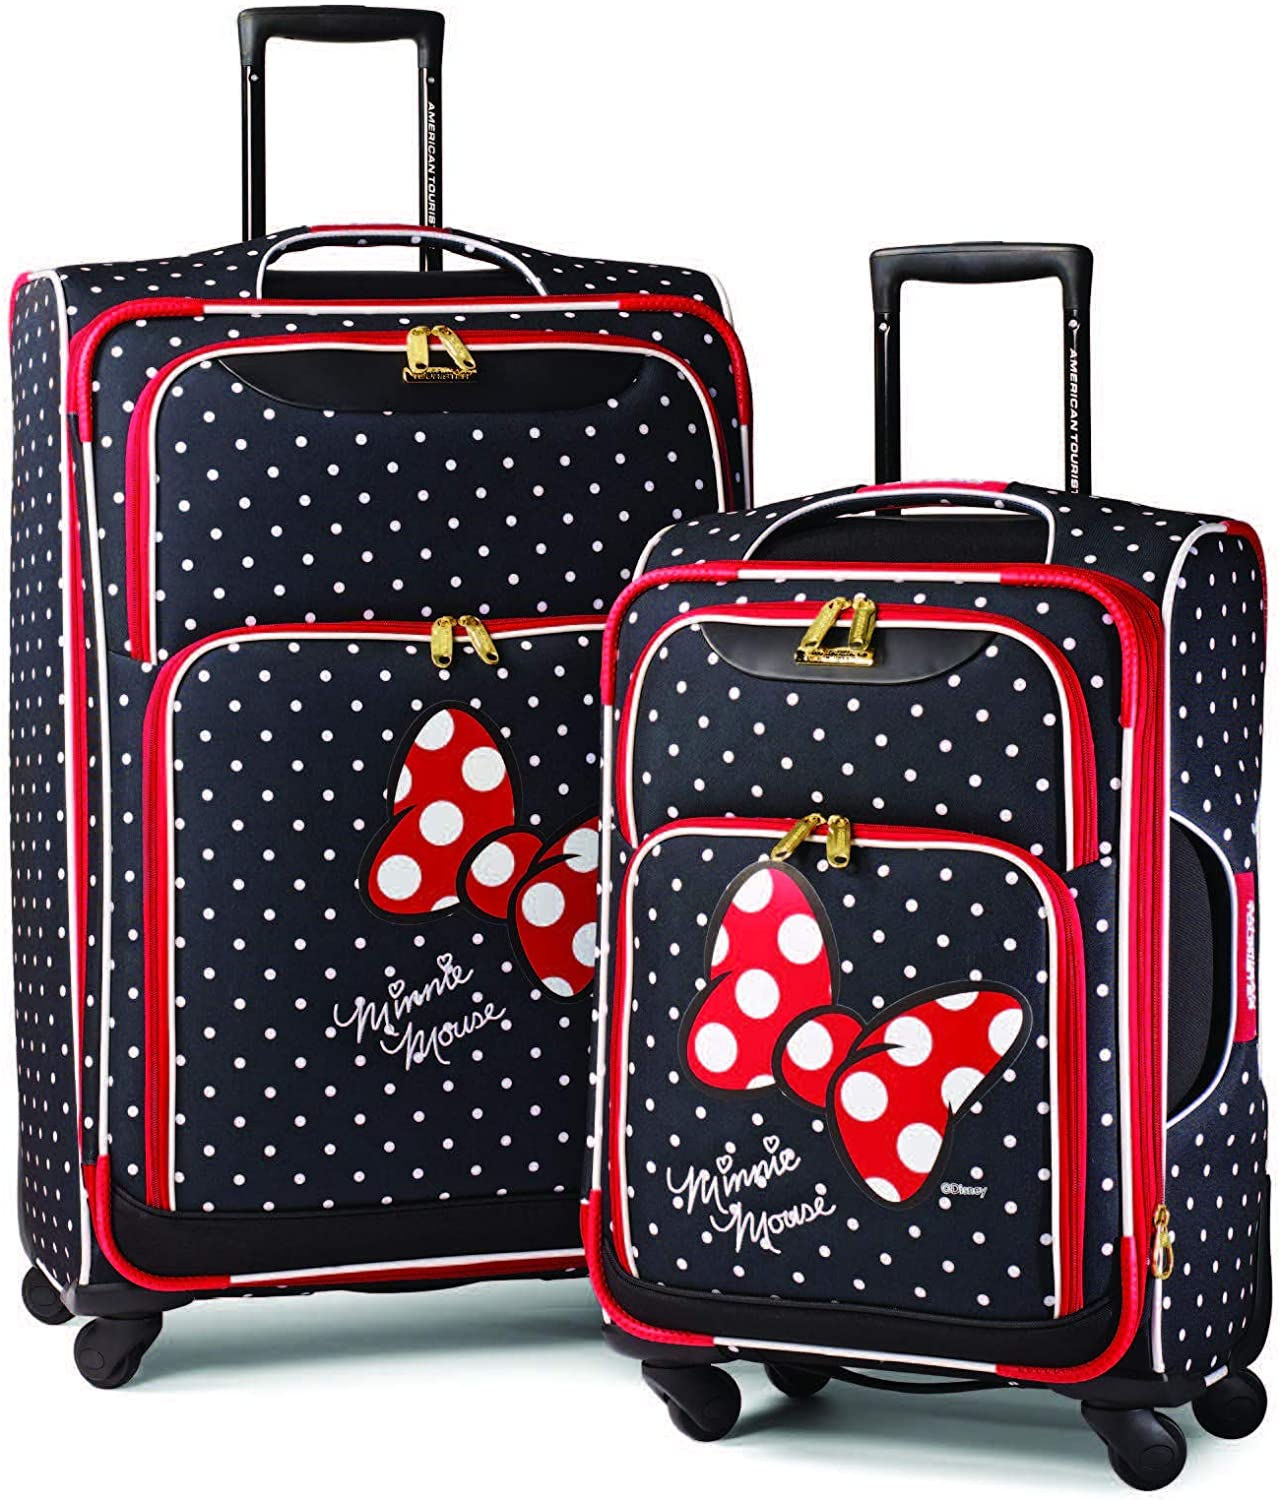 American Tourister Disney Softside Luggage with Spinner Wheels Minnie Mouse Red Bow